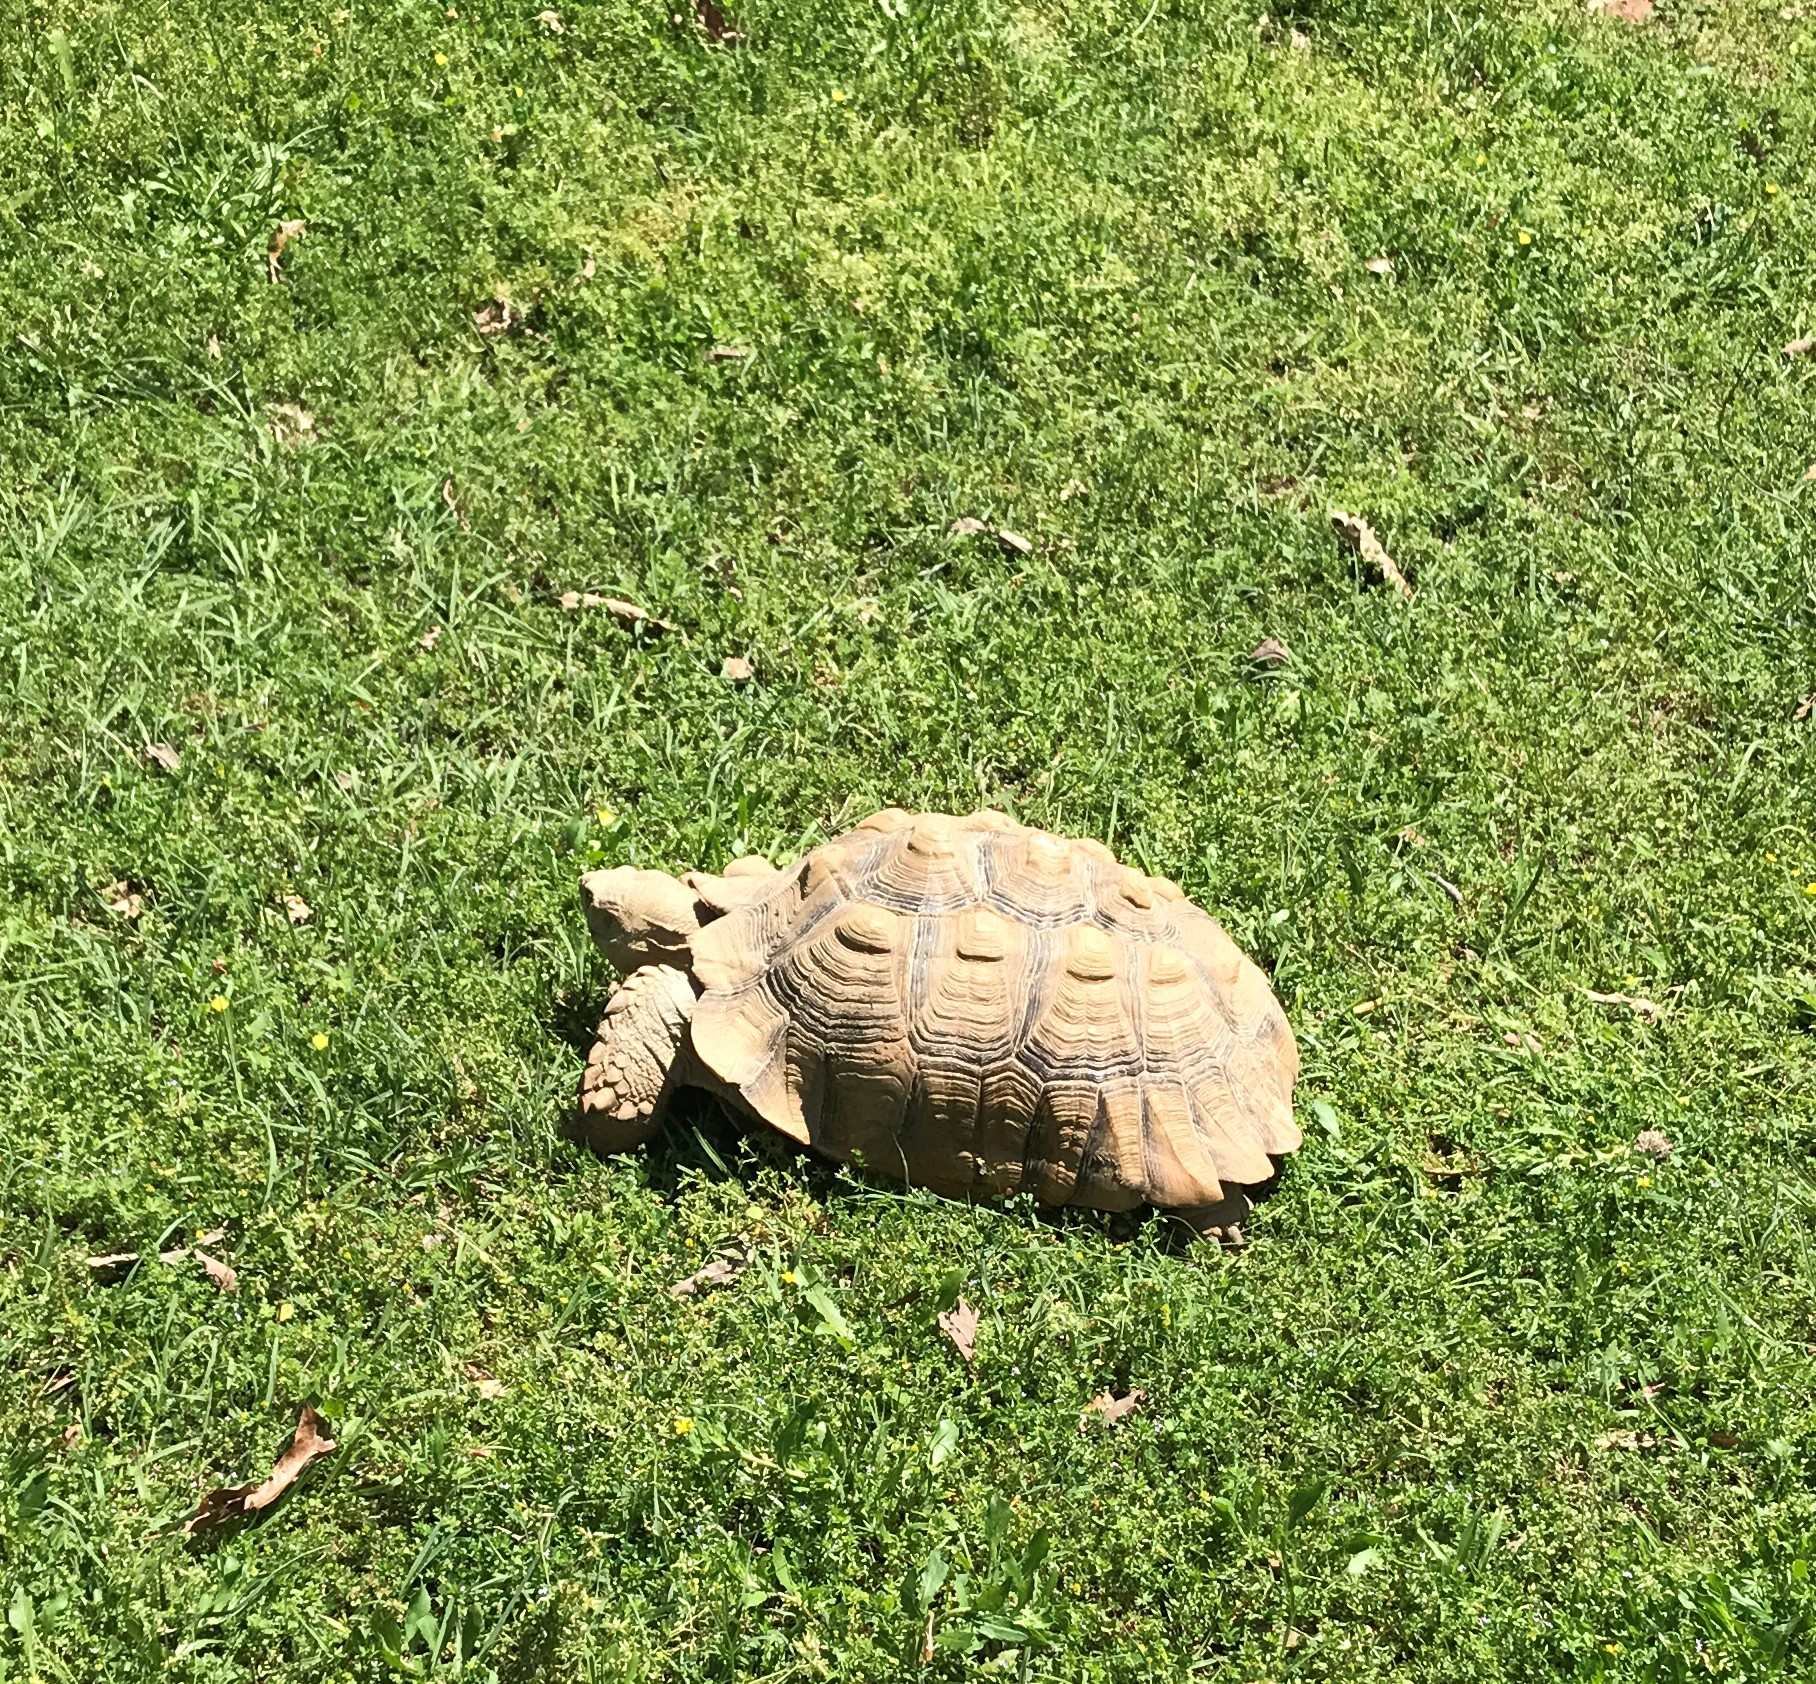 A tortoise!  Not as big as the one our neighbors had in Hillcrest though.